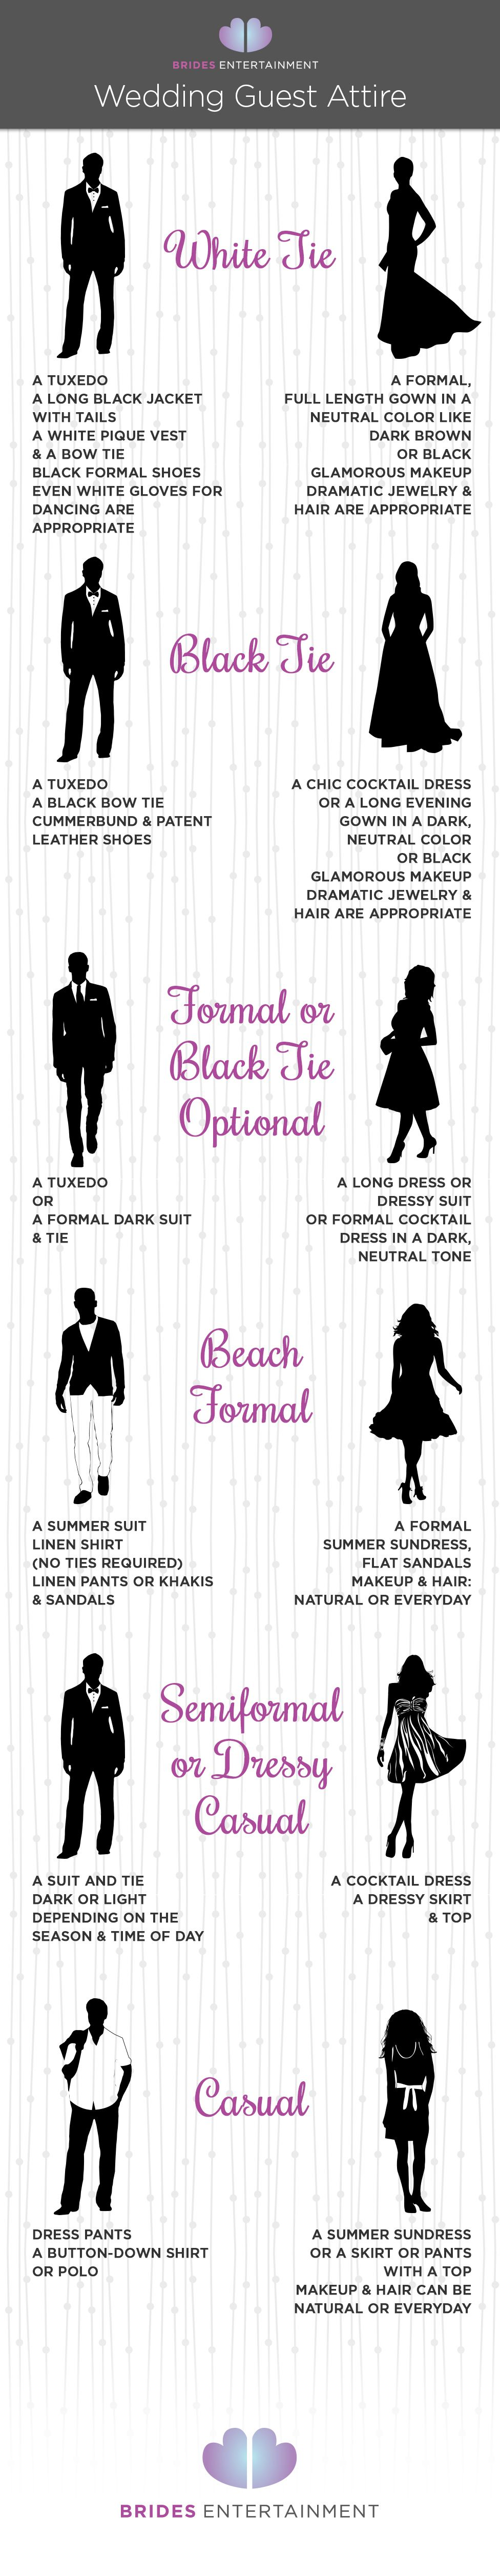 Wedding attire deciphered difference between white and black tie